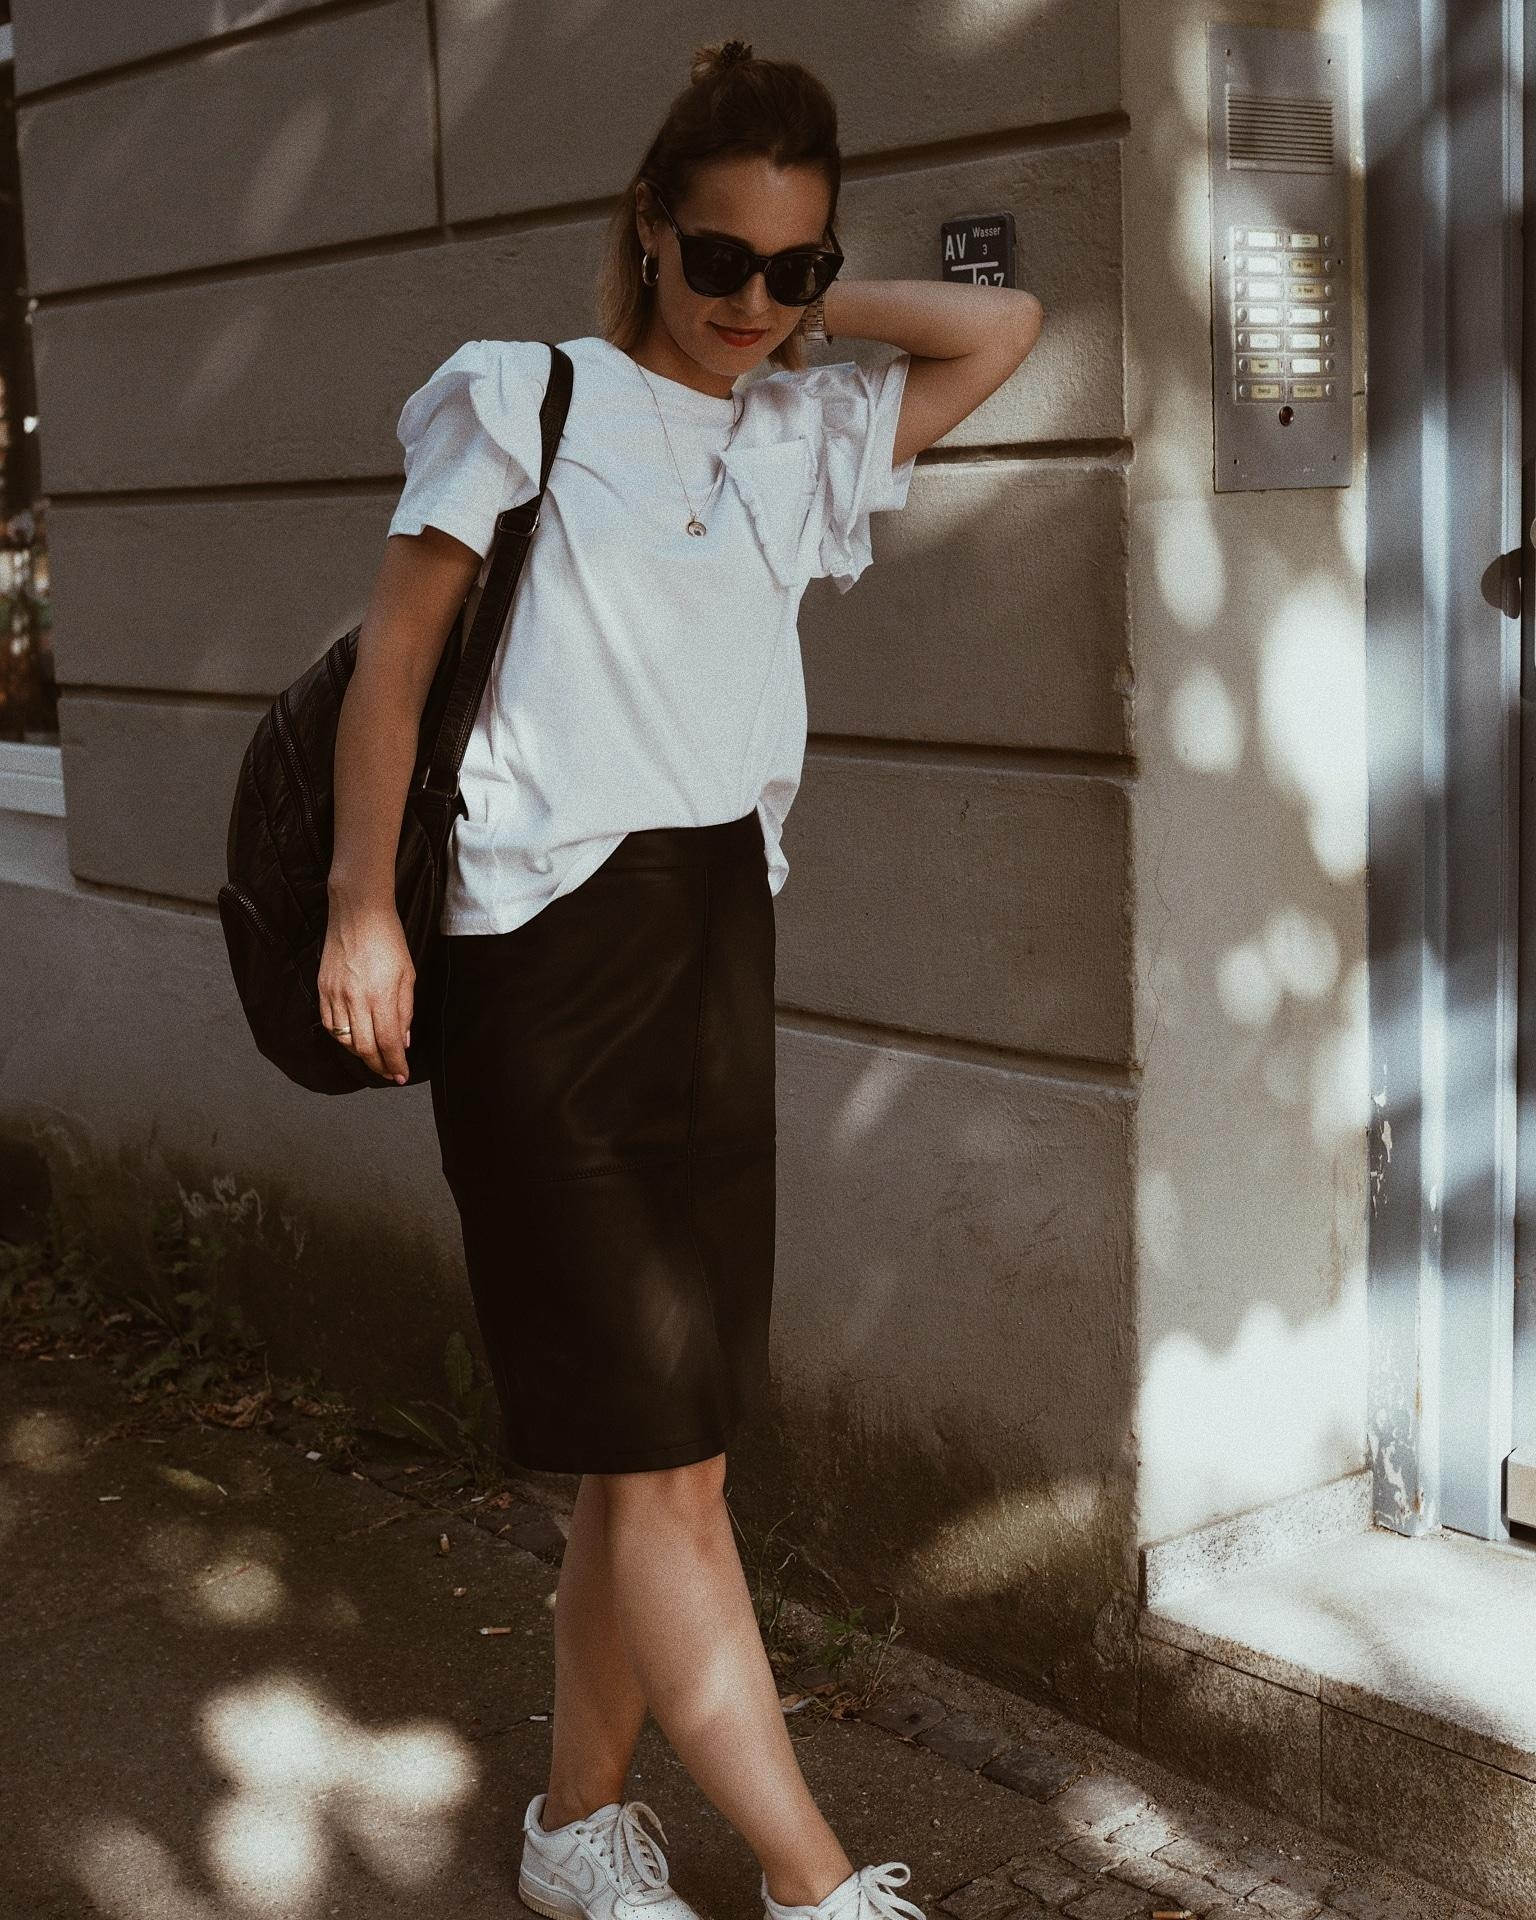 Black & white 🖤 #fashion #fashioncrush #ootd #summerlook